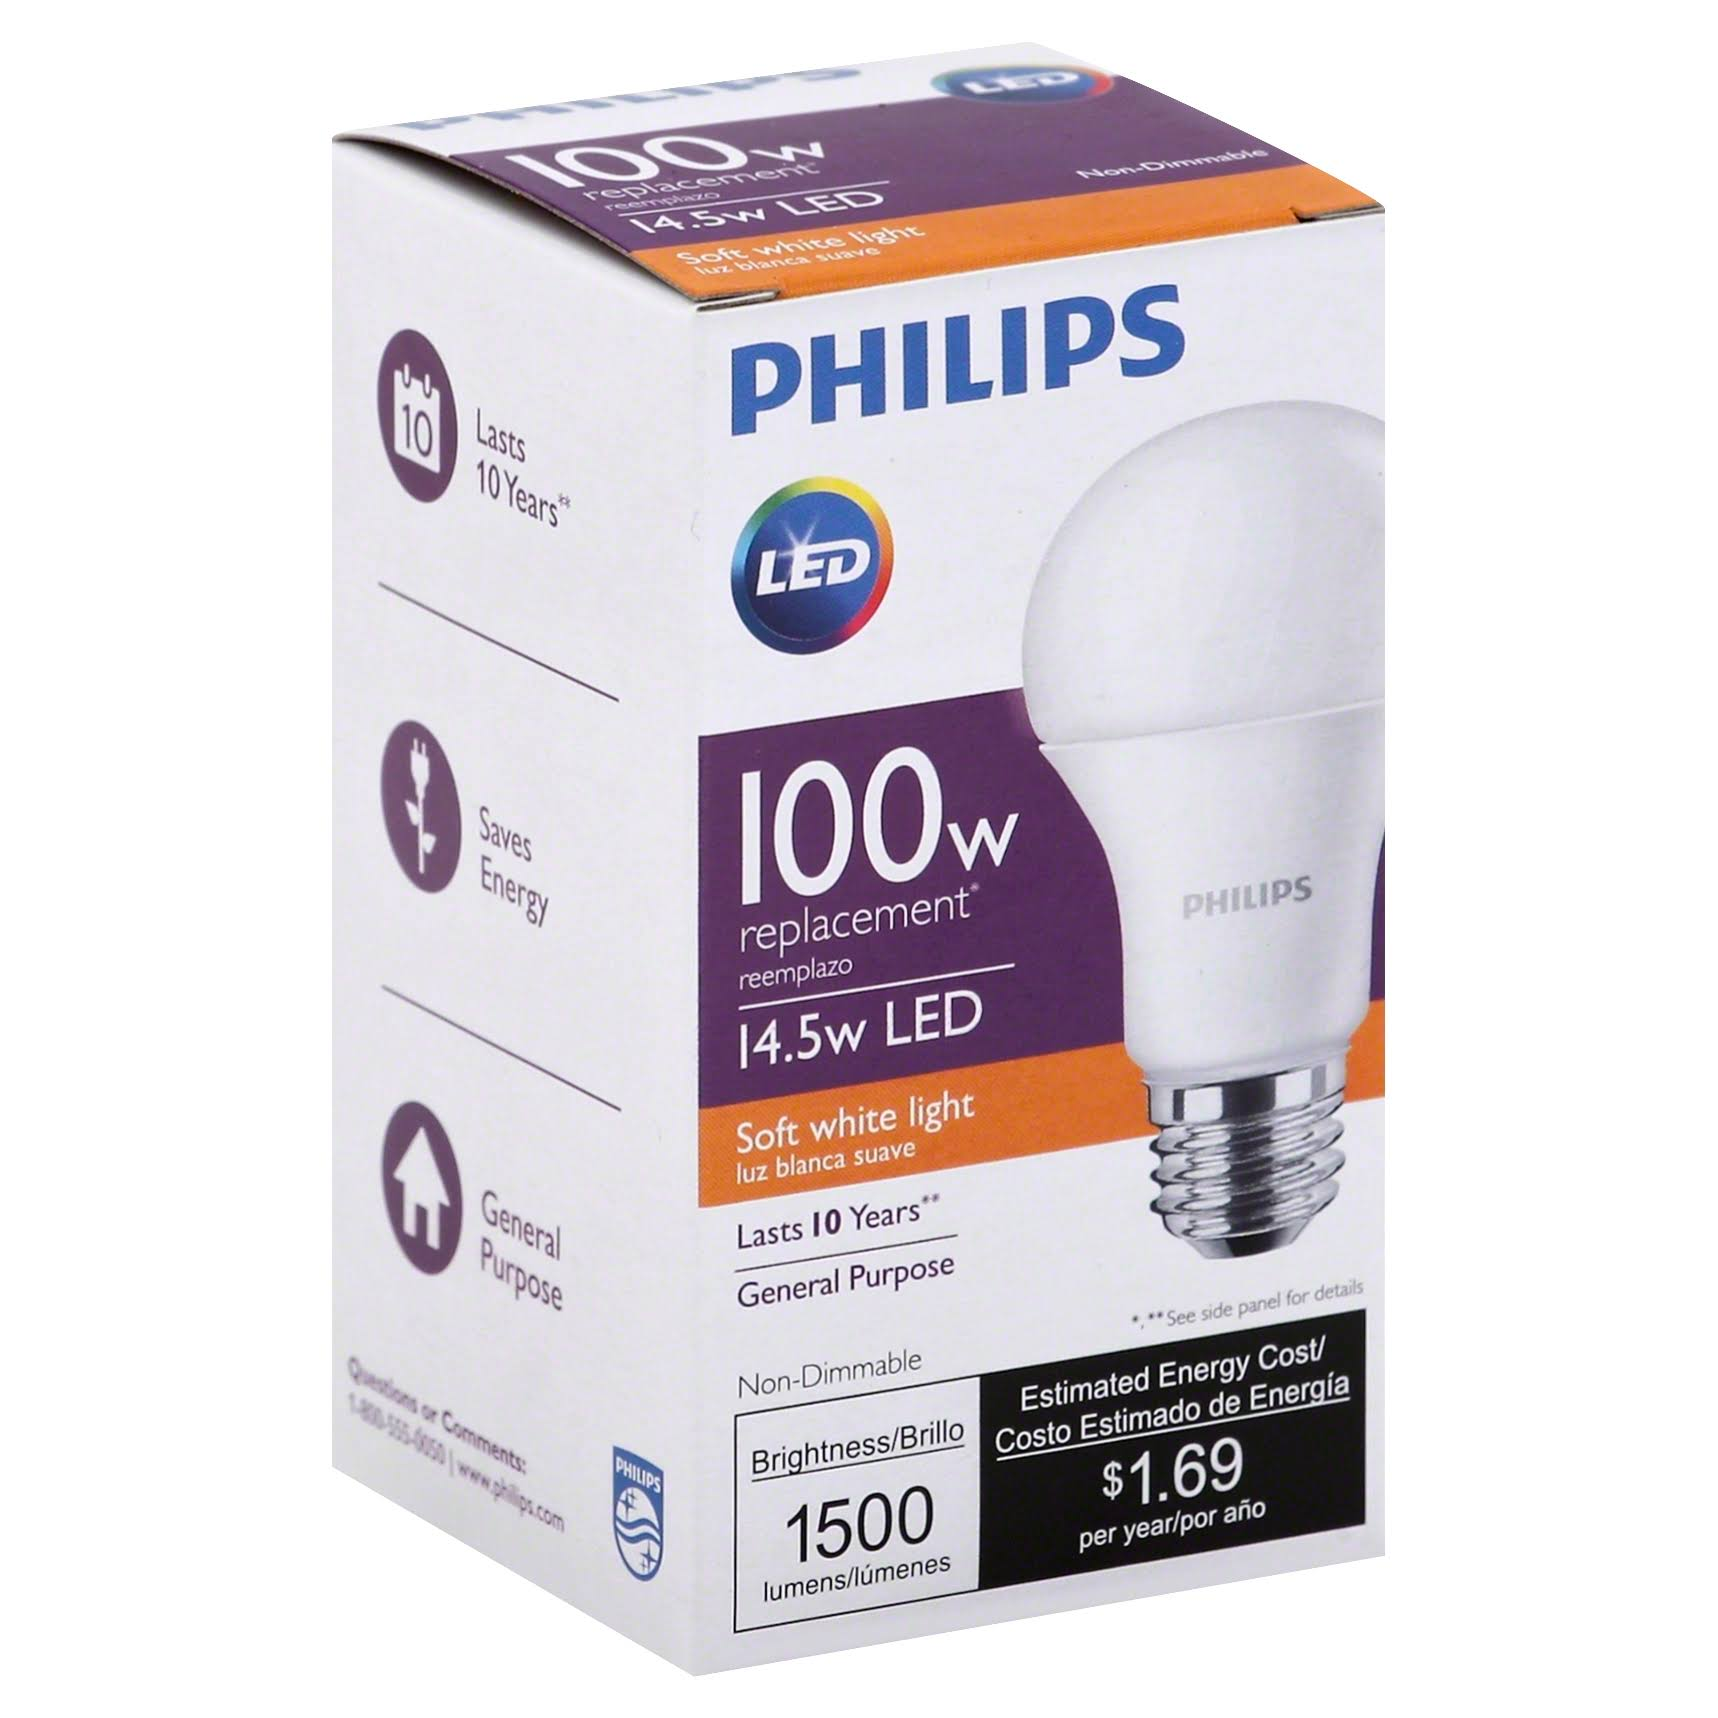 Philips Led Light Bulb - 14.5W, Soft White, A19